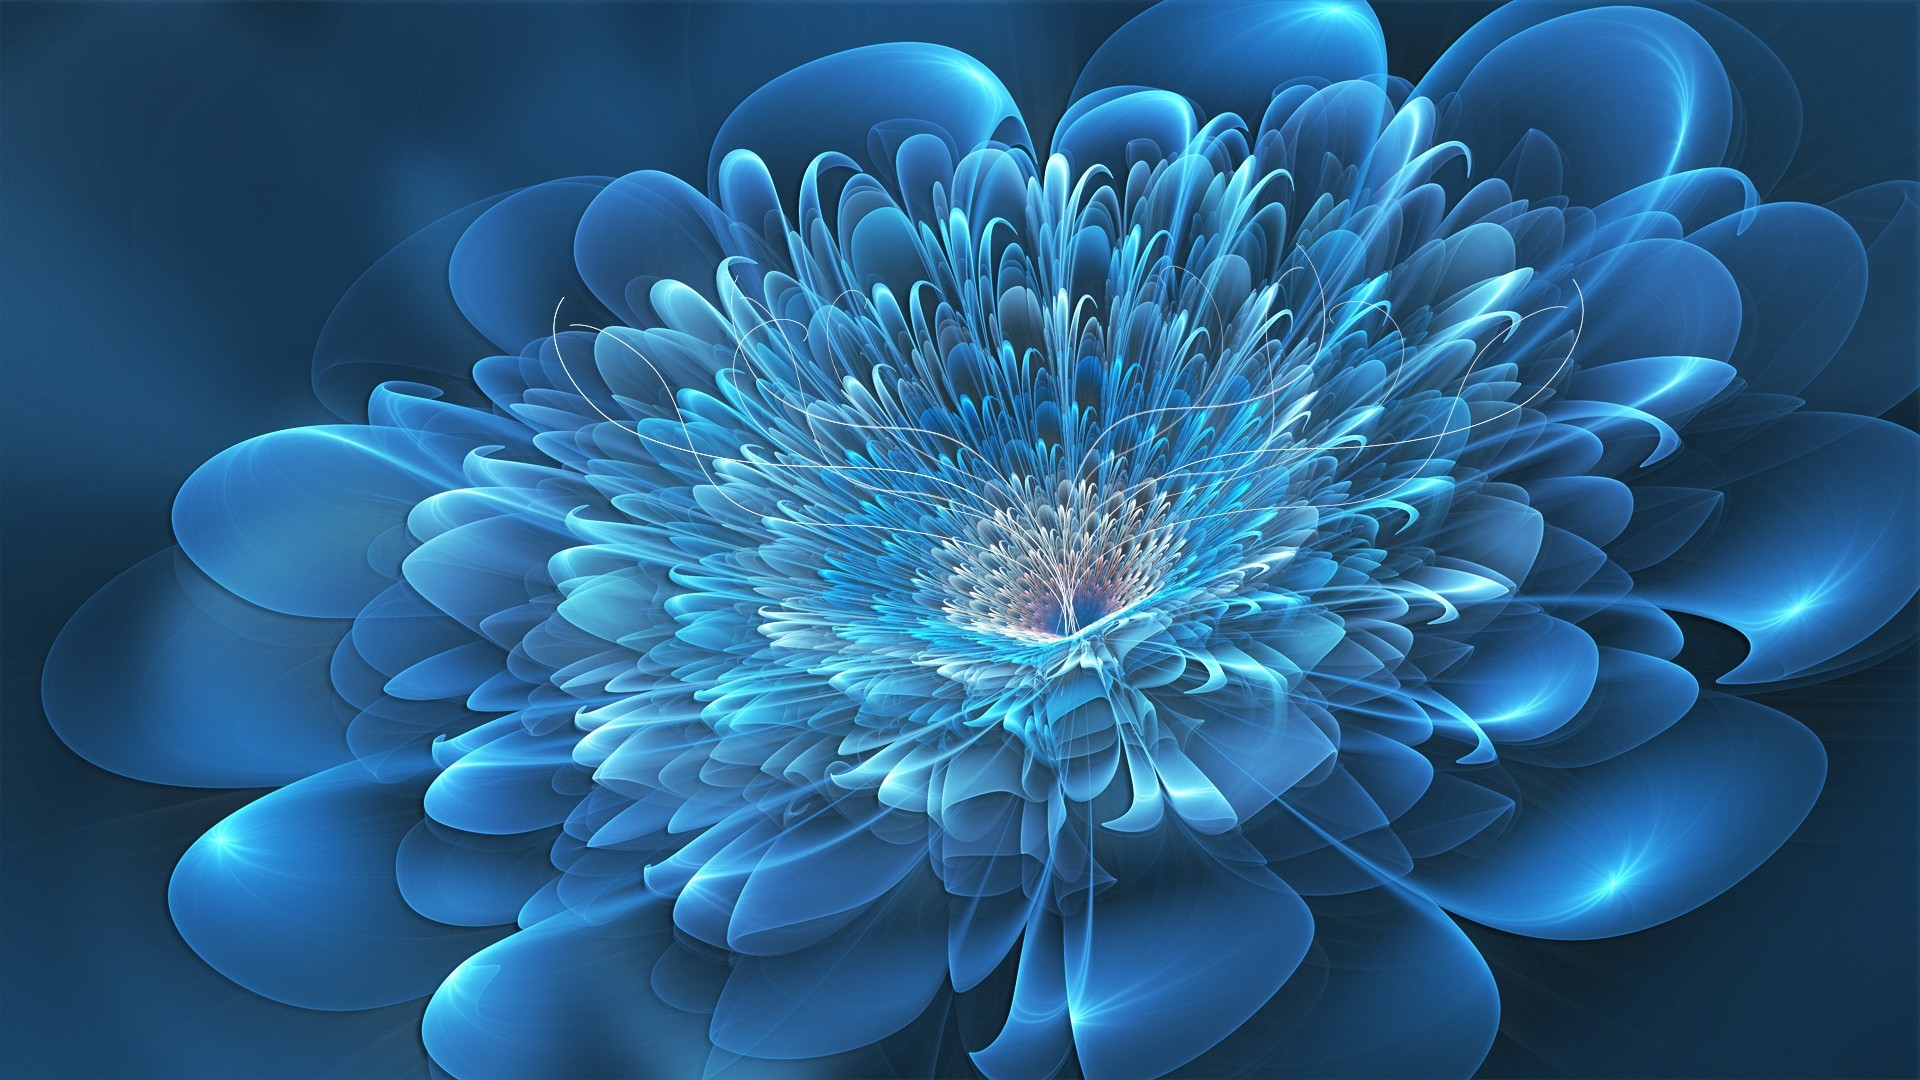 Res: 1920x1080, 10. blue-flower-wallpaper10-600x338